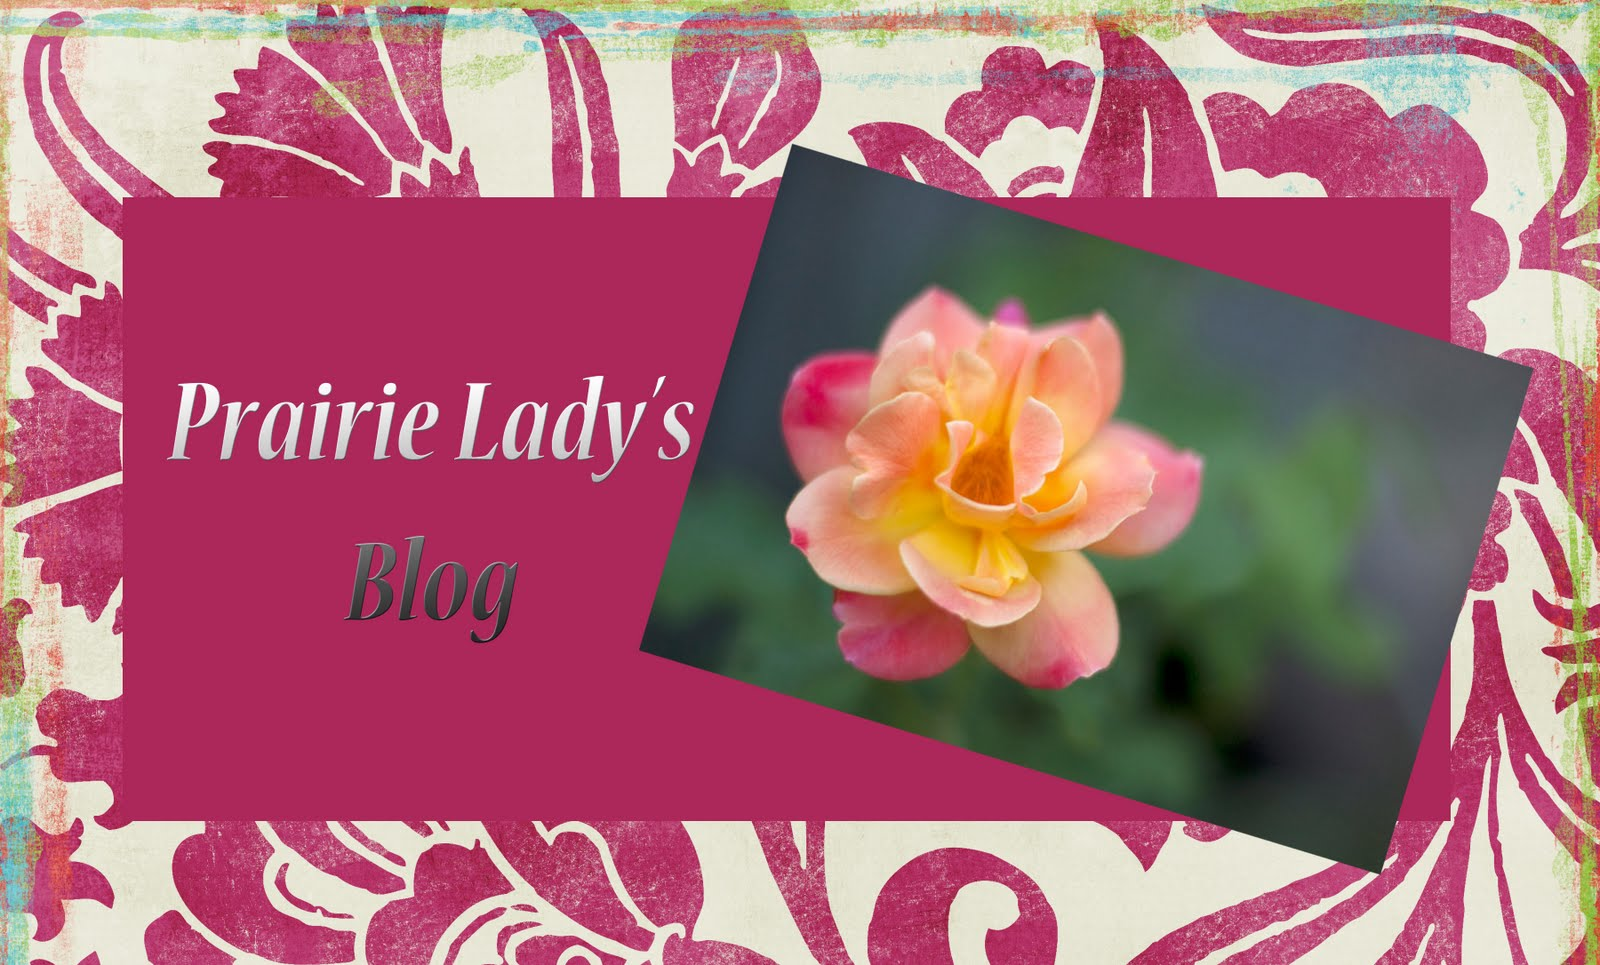 Prairie Lady's Blog